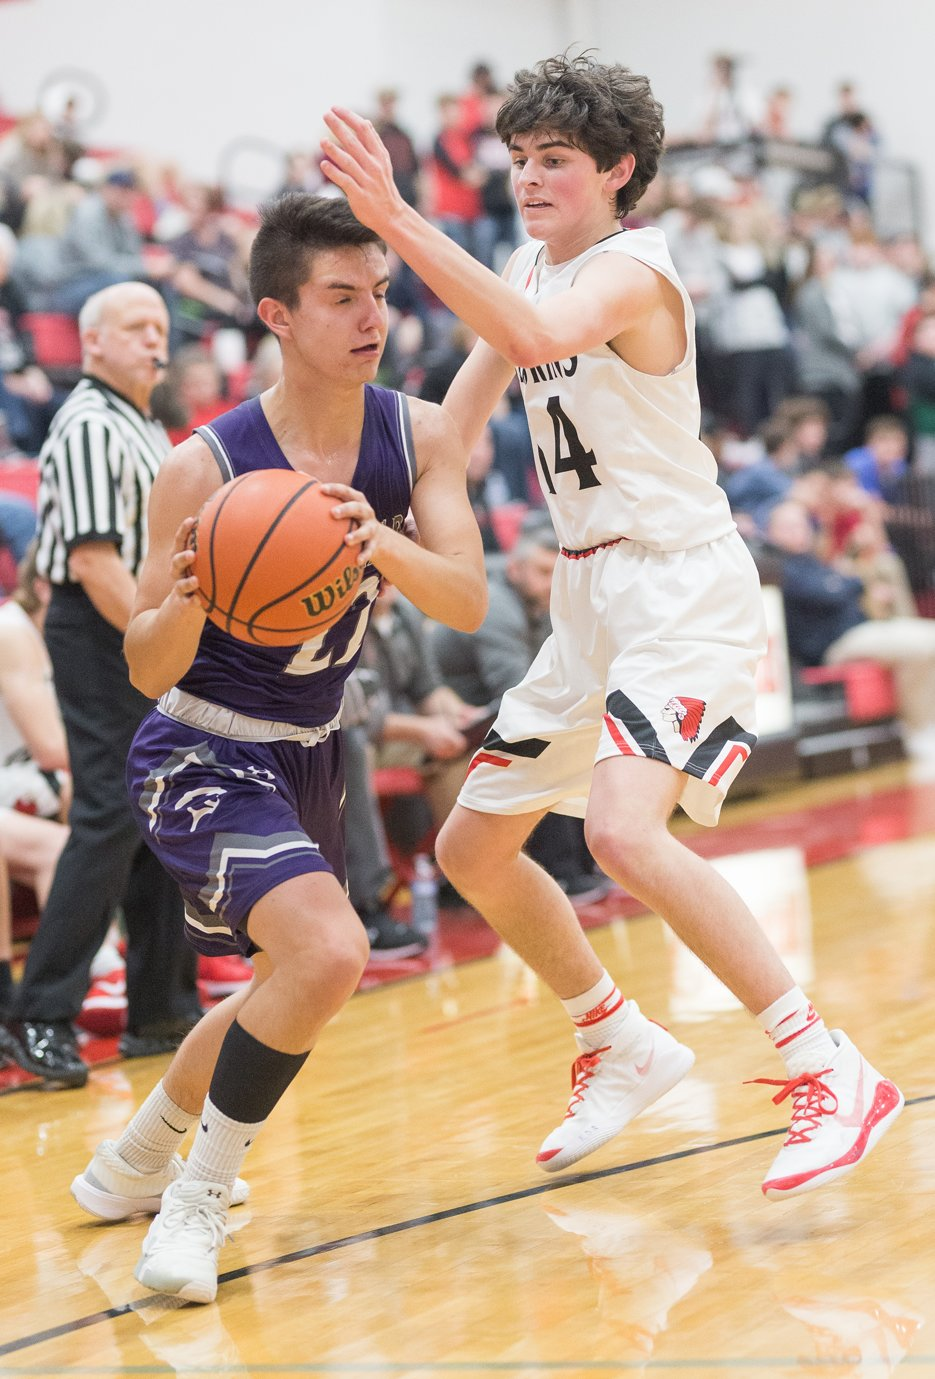 Litchfield's Blake McGill looks for a way around the defensive pressure provided by Nokomis' Seth Johnson during the Purple Panthers' 39-24 loss to the Redskins on Tuesday, Jan. 7.